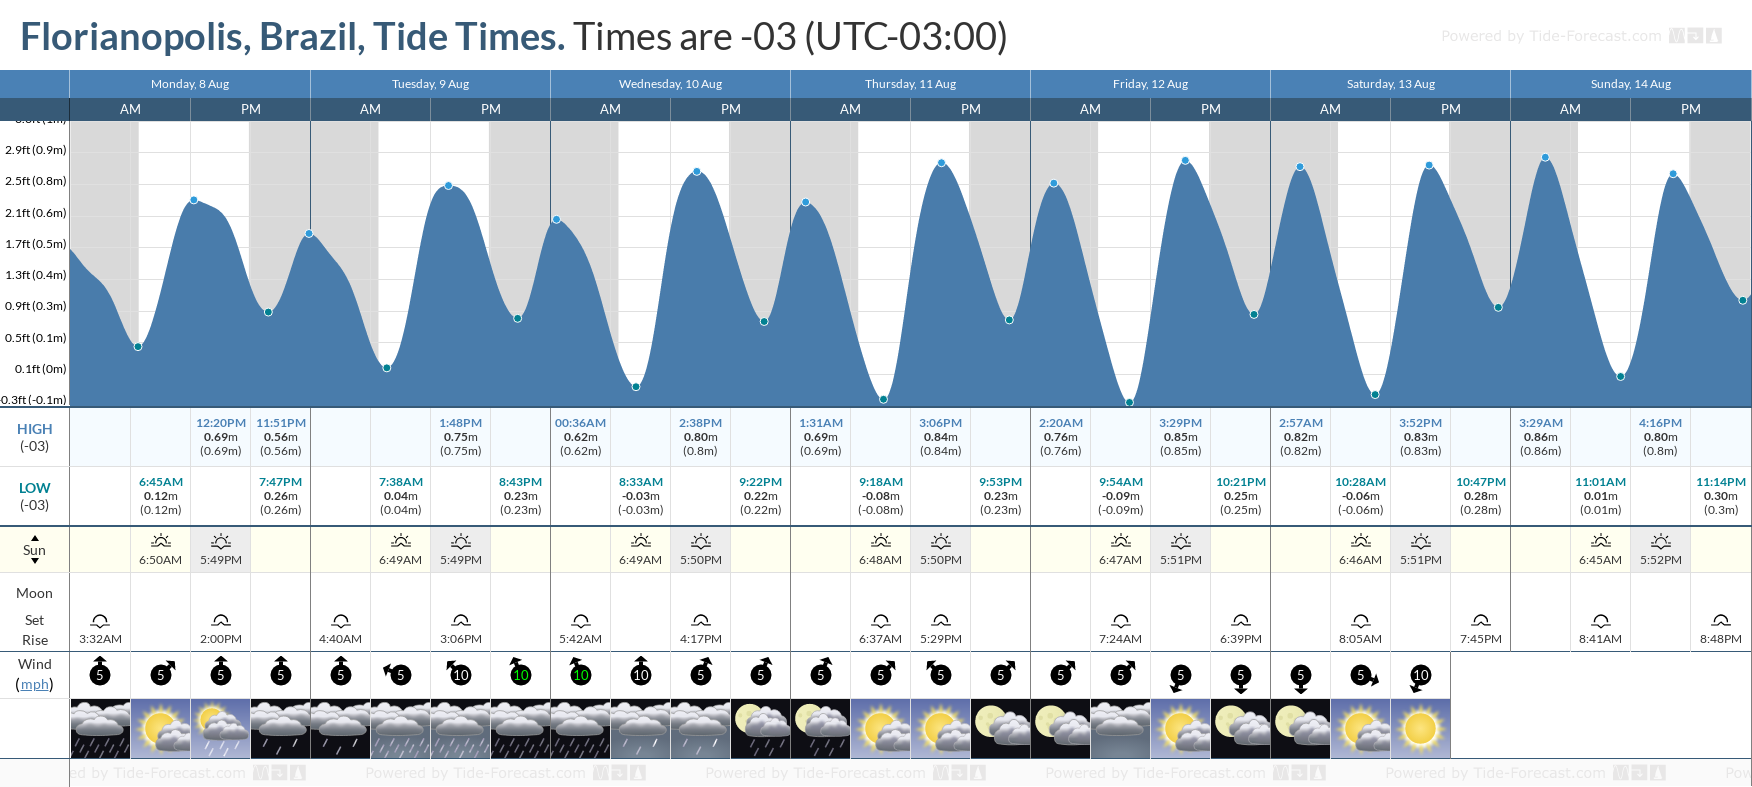 Florianopolis, Brazil Tide Chart including high and low tide tide times for the next 7 days